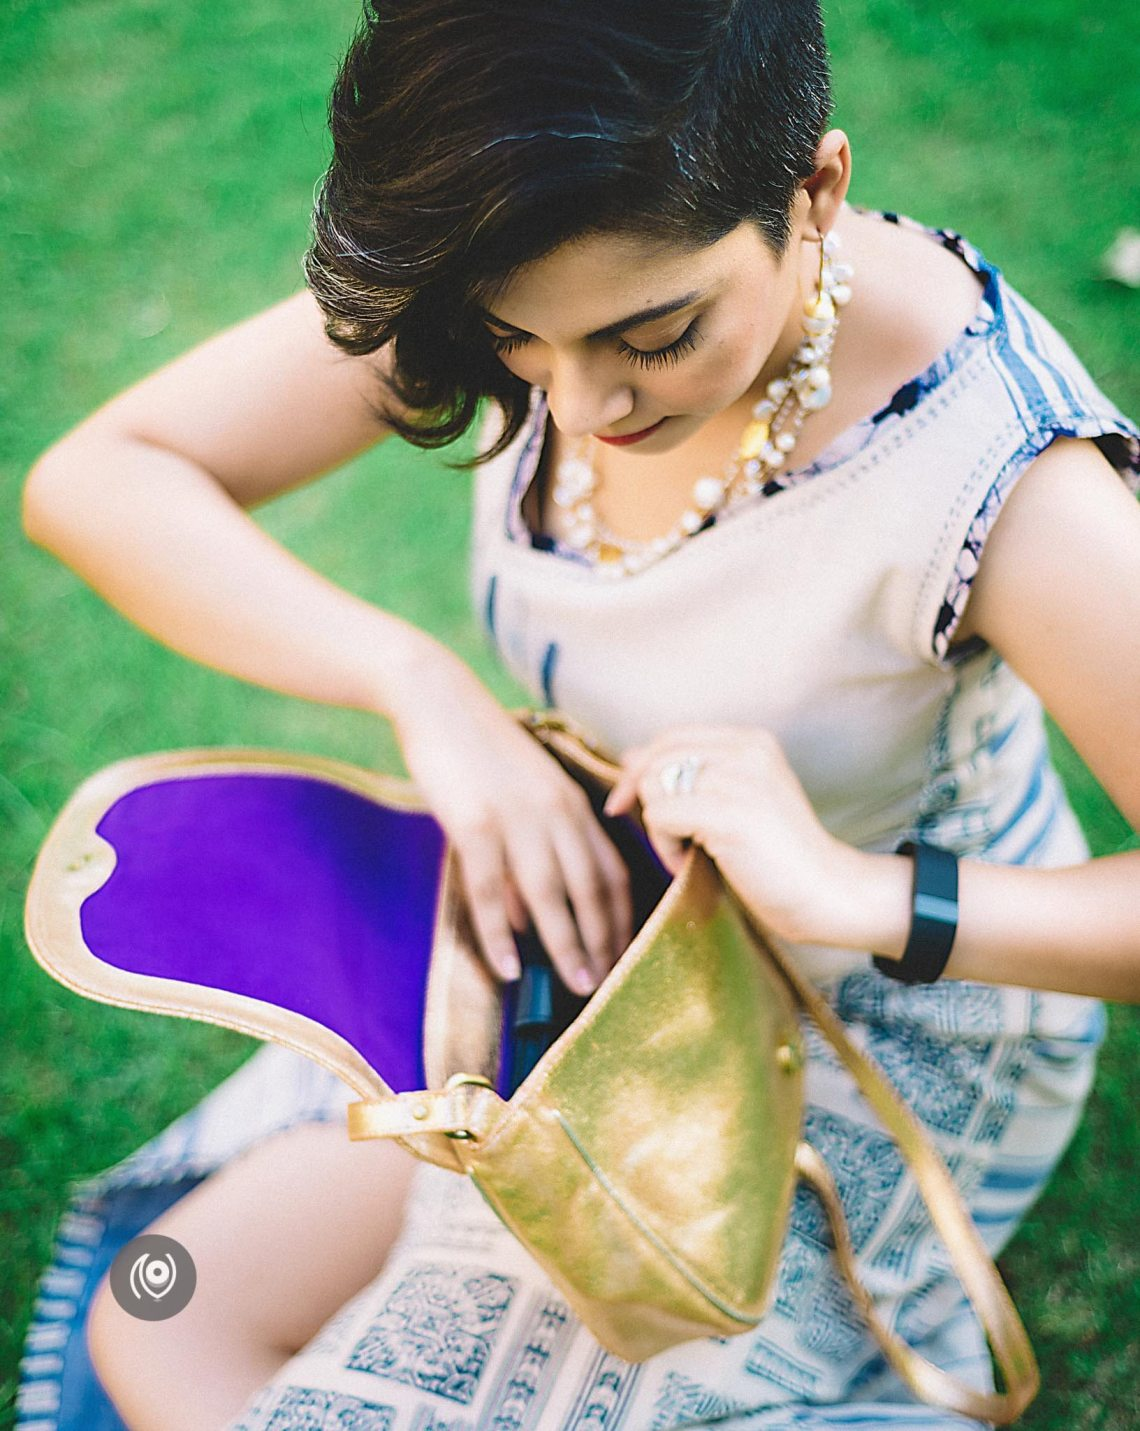 Naina.co-Raconteuse-Visuelle-Photographer-Blogger-Storyteller-Luxury-Lifestyle-CoverUp-Mi-UrvashiKaur-Risa-08